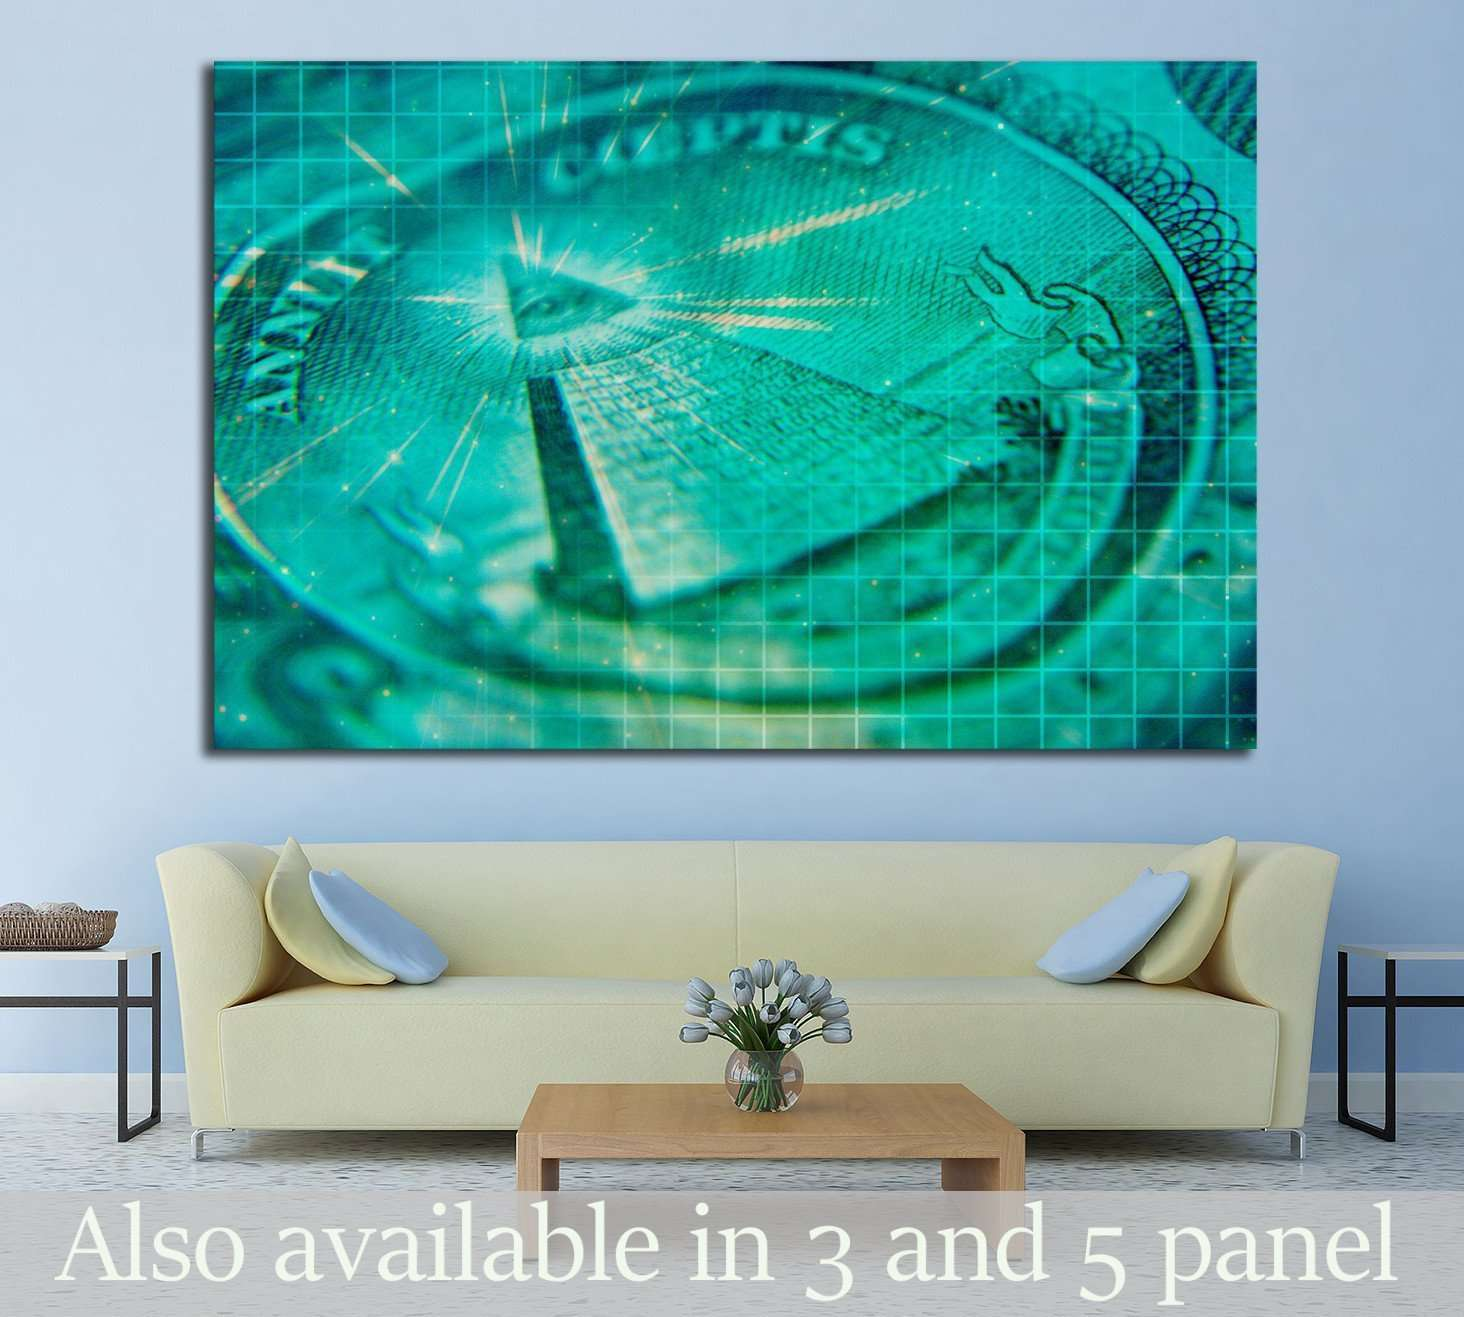 Artistic Grunge Money №1612 Ready to Hang Canvas Print